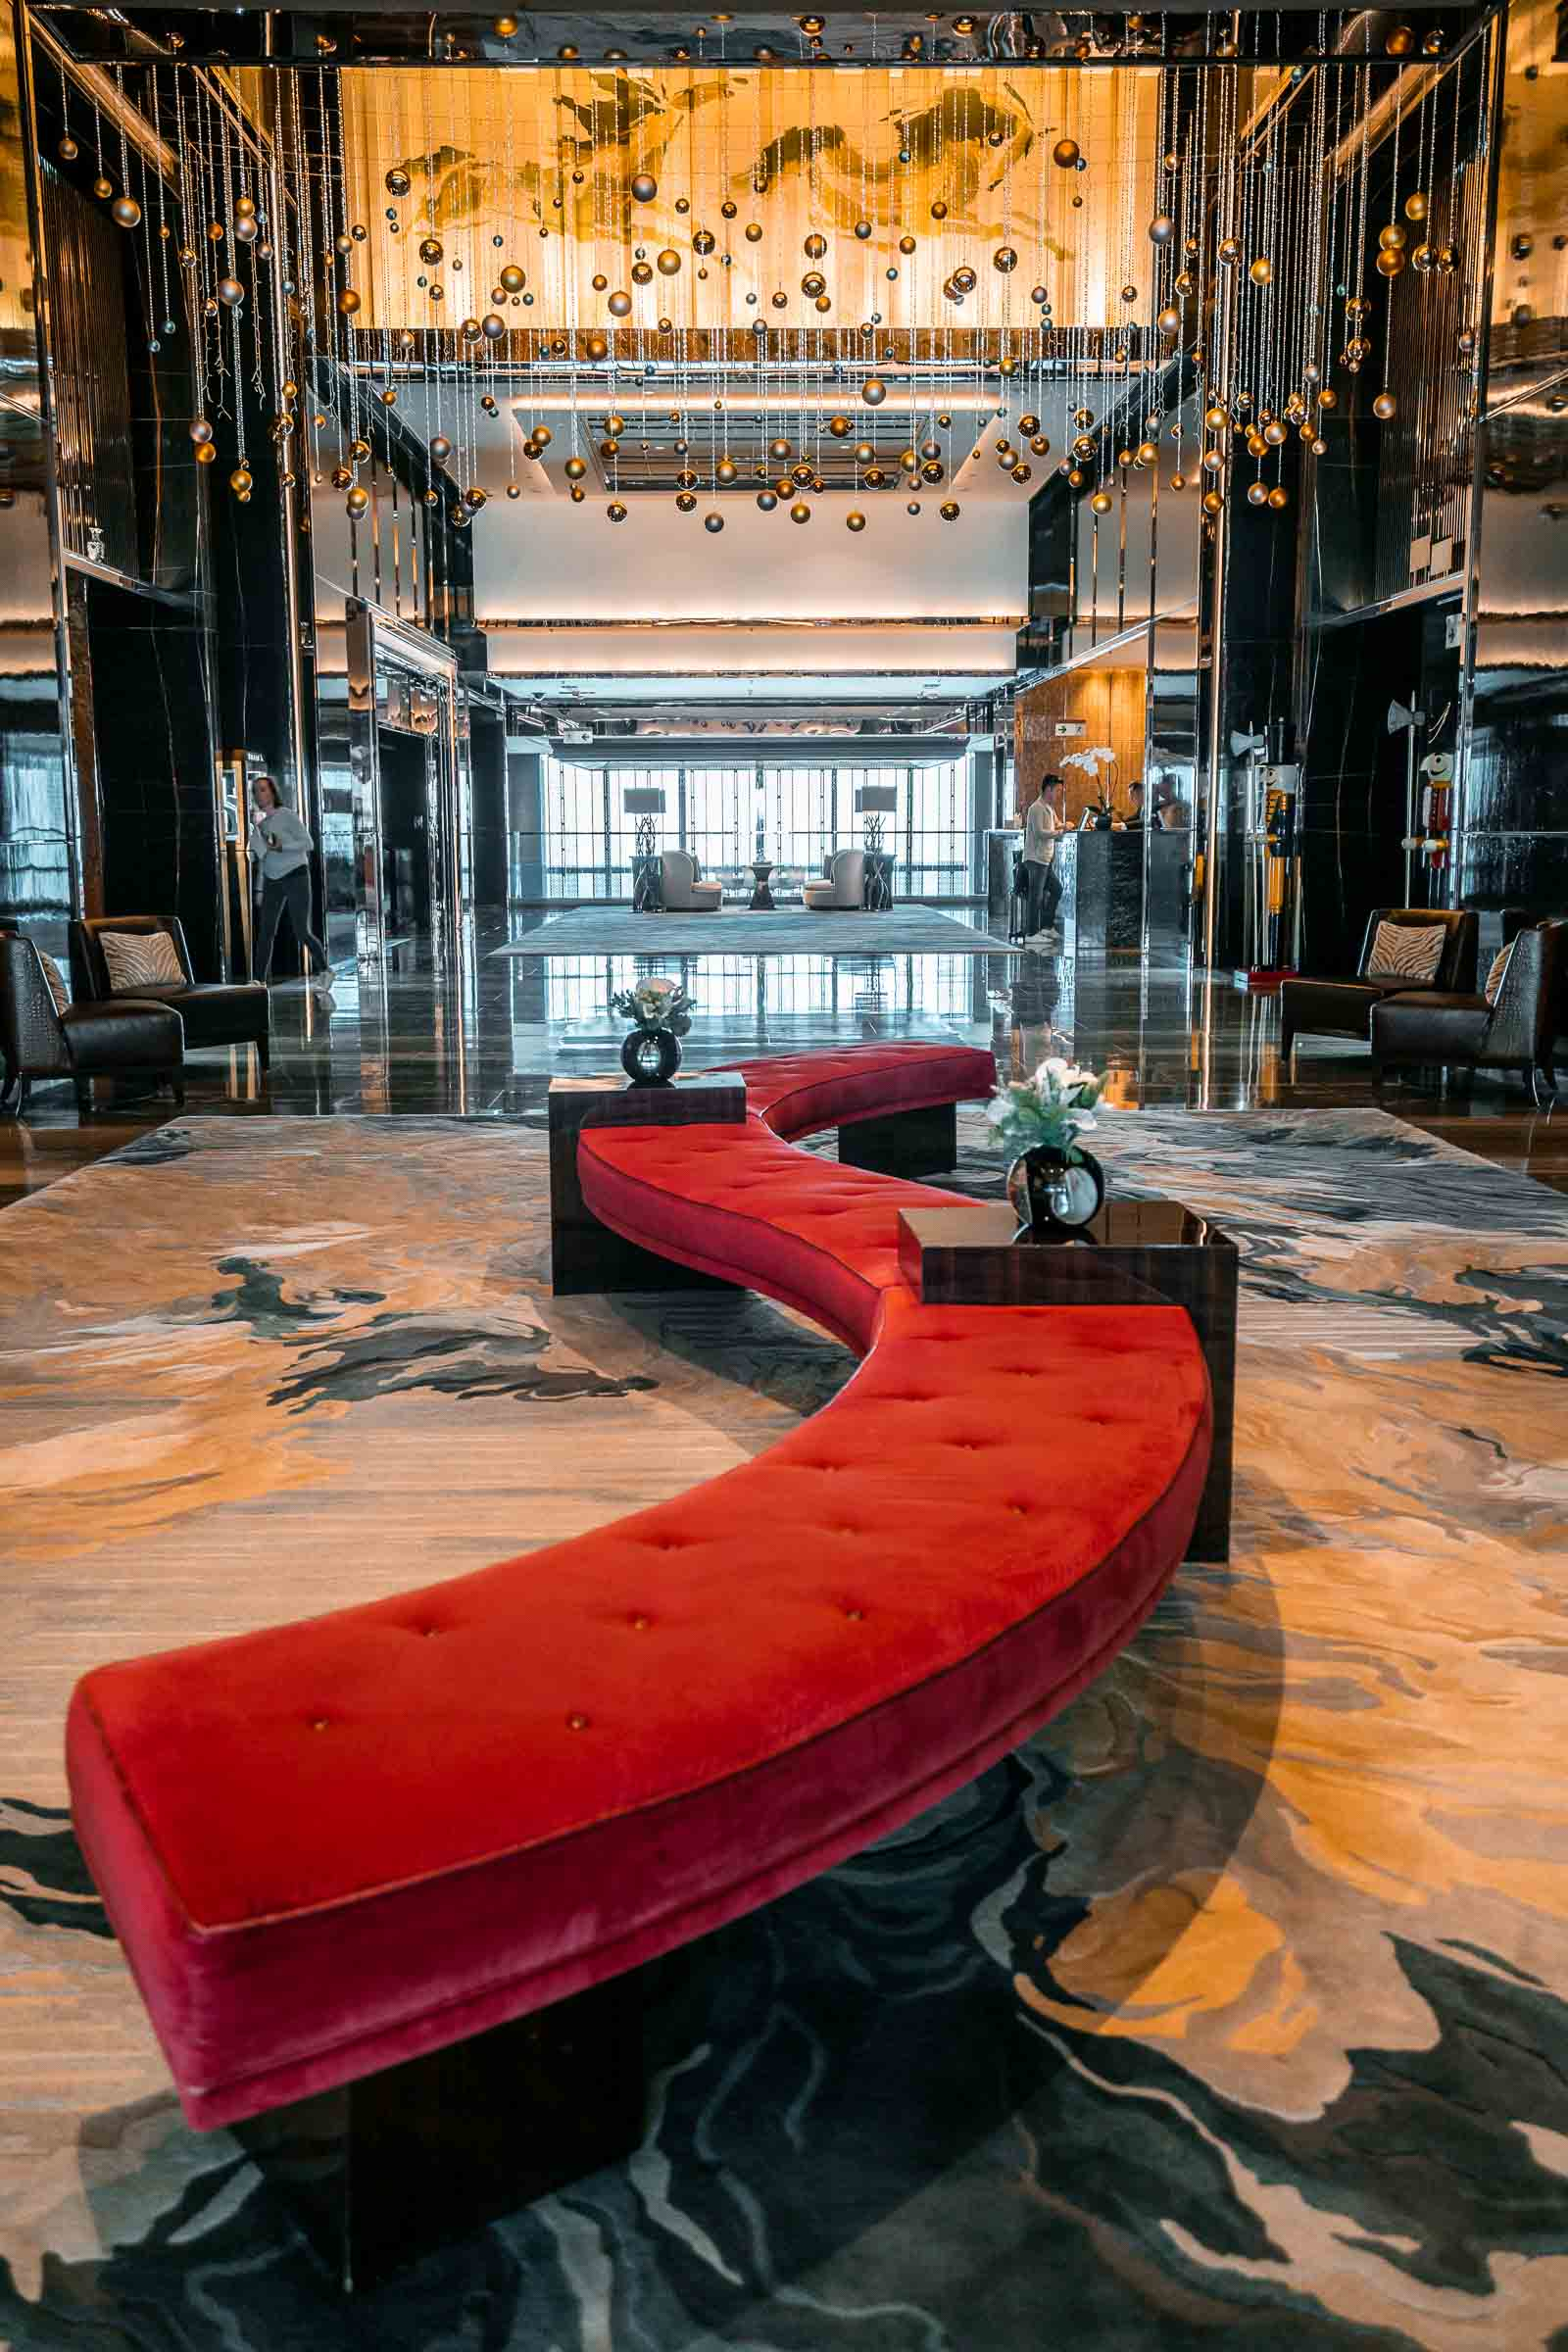 Lobby in the Ritz Carlton Hong Kong with a golden and dark marble design and a big red sofa